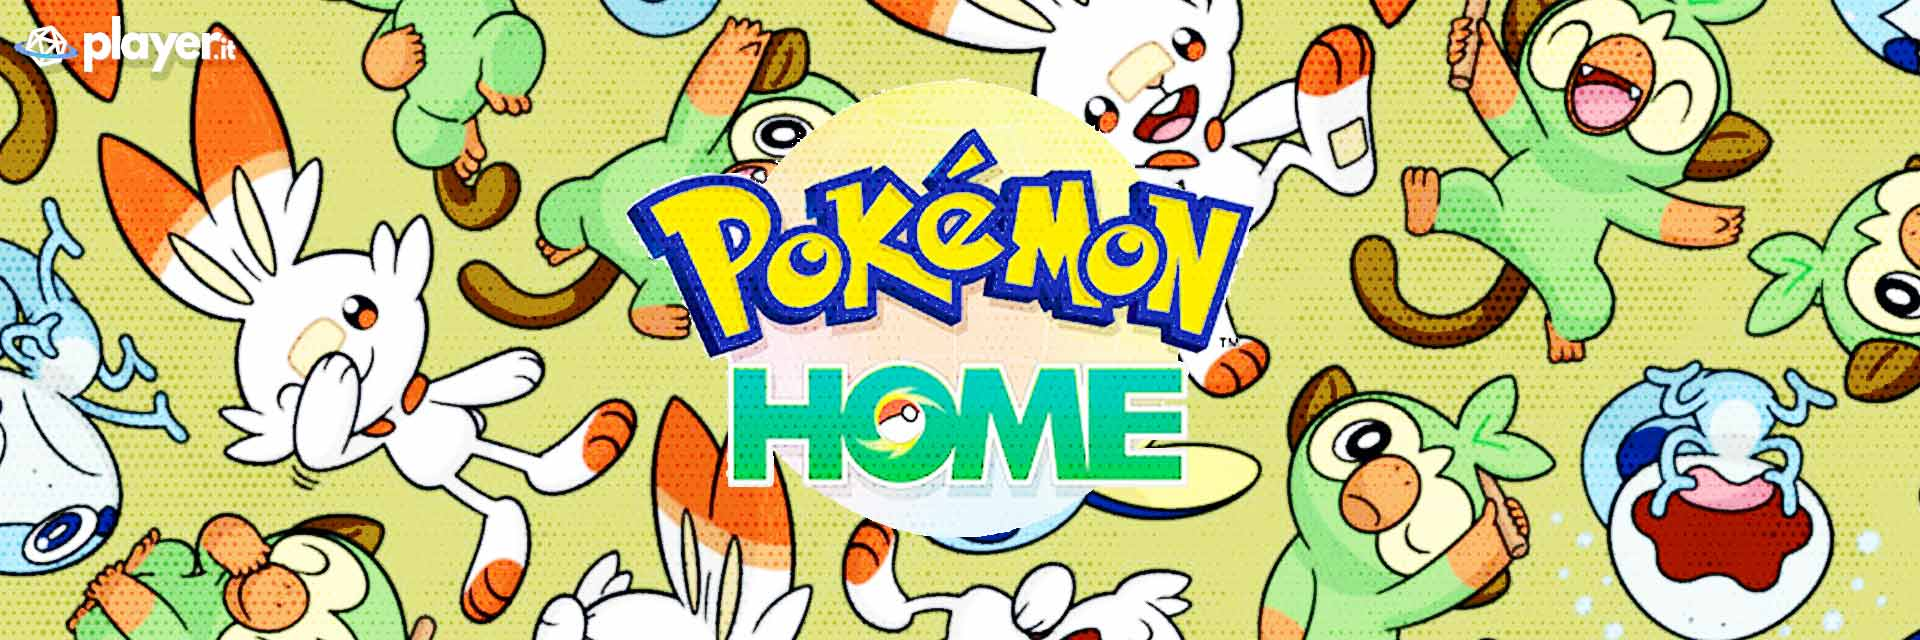 pokemon home wallpaper in hd